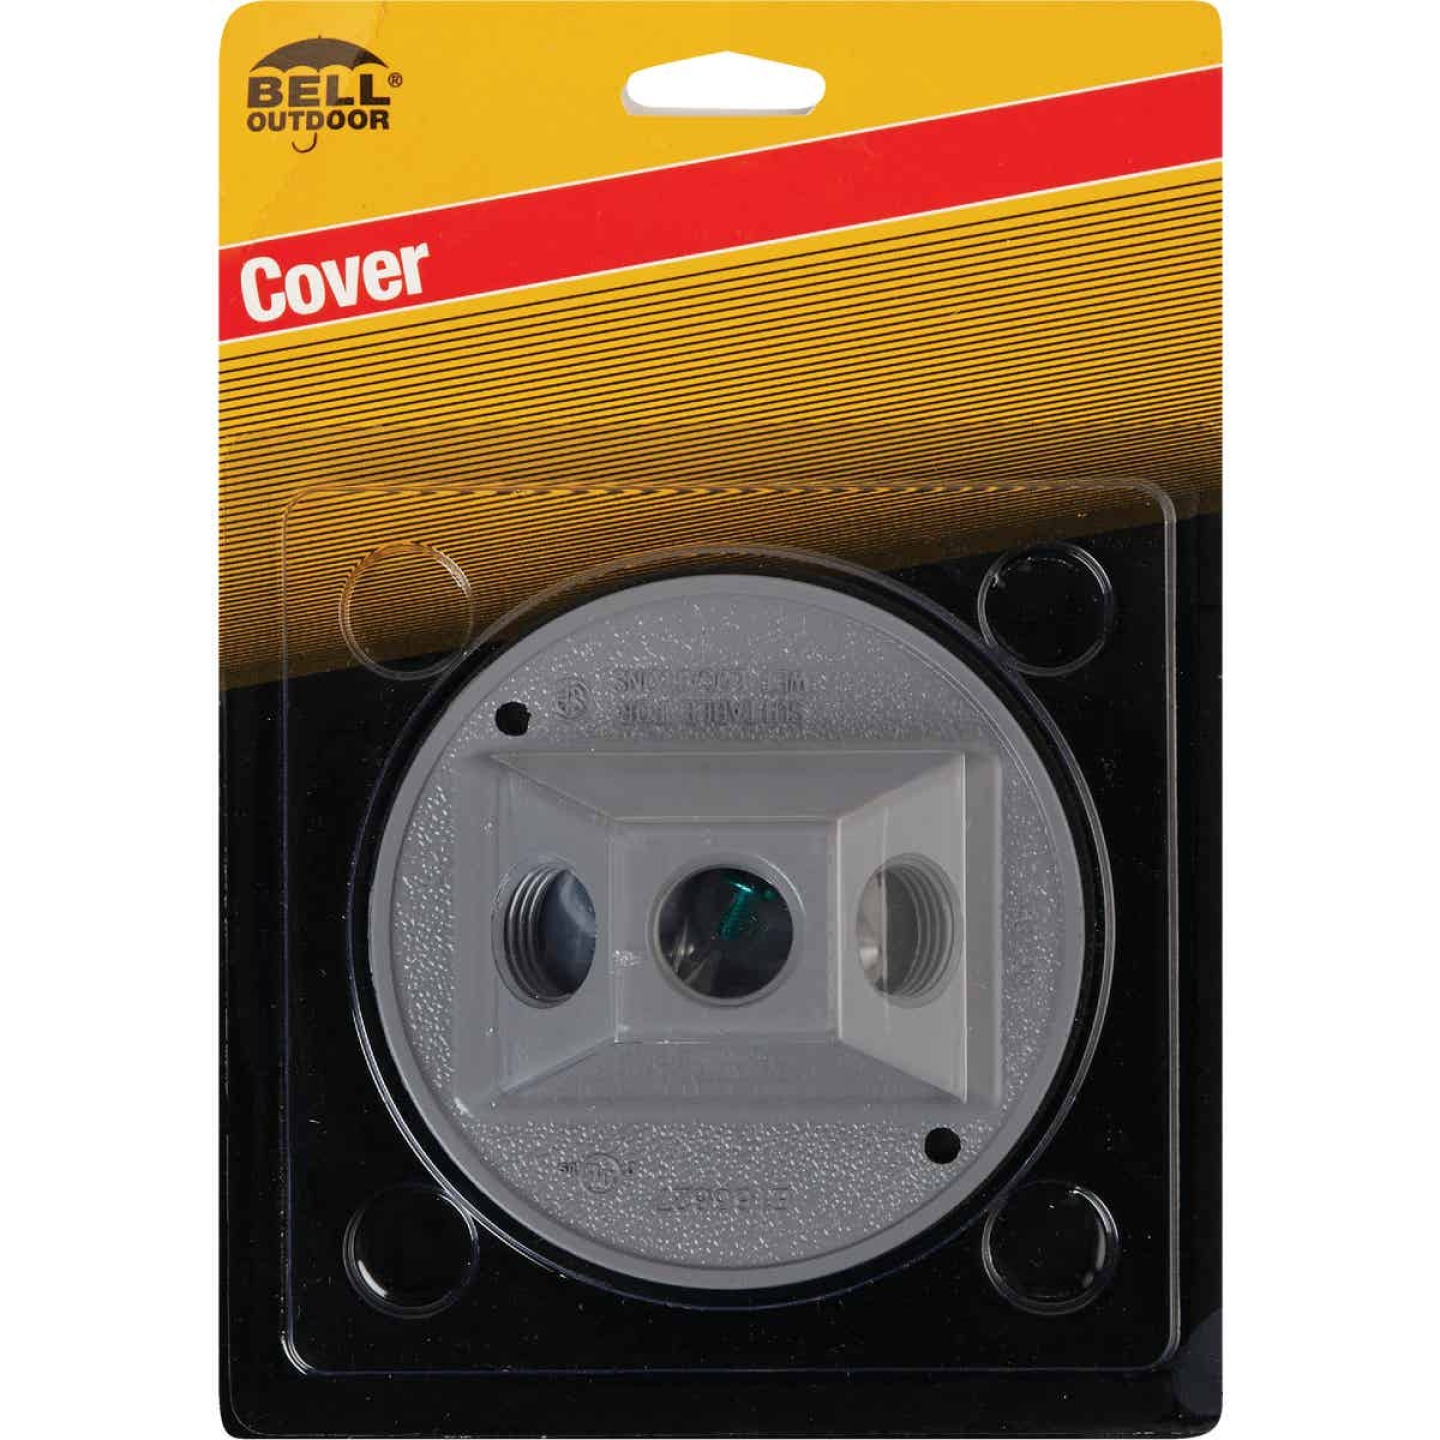 Bell 3-Outlet Round Zinc Gray Cluster Weatherproof Outdoor Box Cover, Carded Image 2